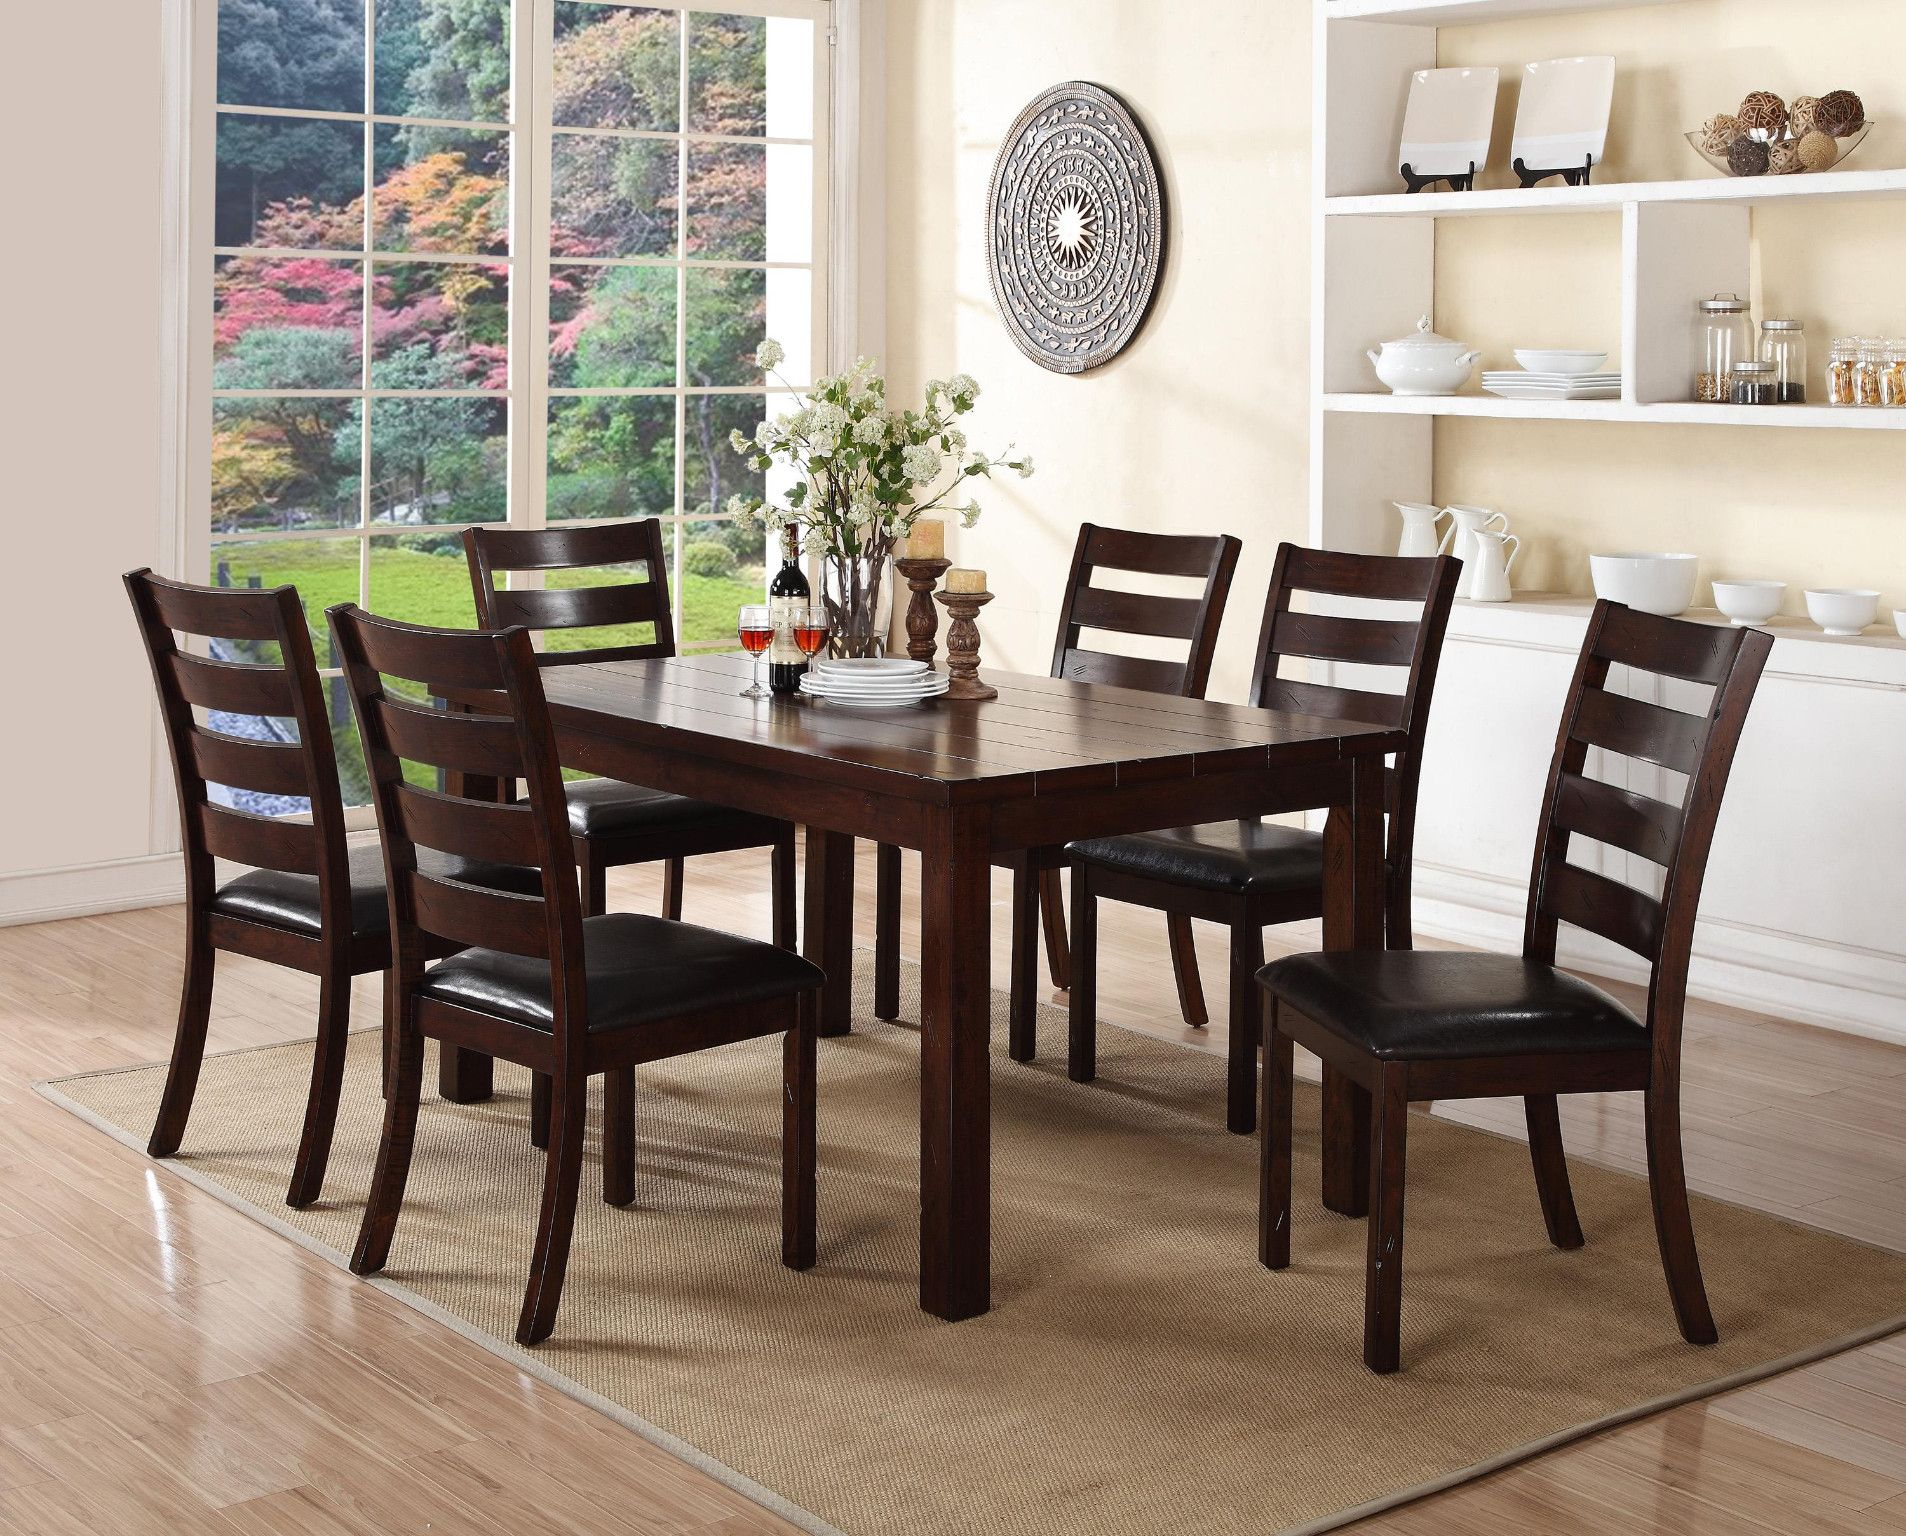 Quinn 5 Piece Dinette Table And 4 Chairs 699 00 Table 38 X 64 X 30 H Chair 20 X 19 X 39 H C Dinette Dinette Tables Furniture Clearance